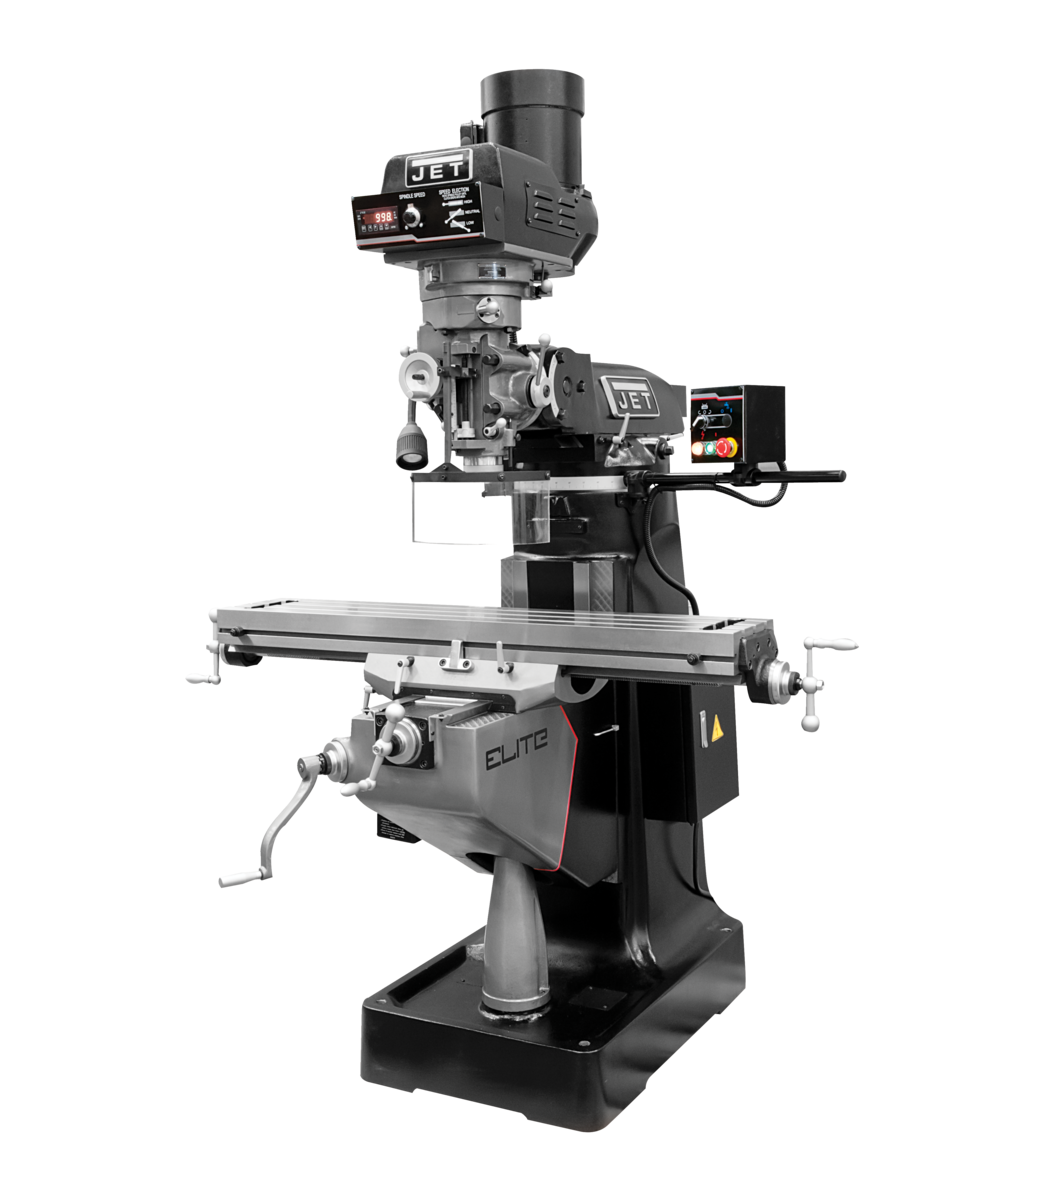 EVS-949 Mill with 3-Axis ACU-RITE 203 (Quill) DRO and Servo X, Y, Z-Axis Powerfeeds